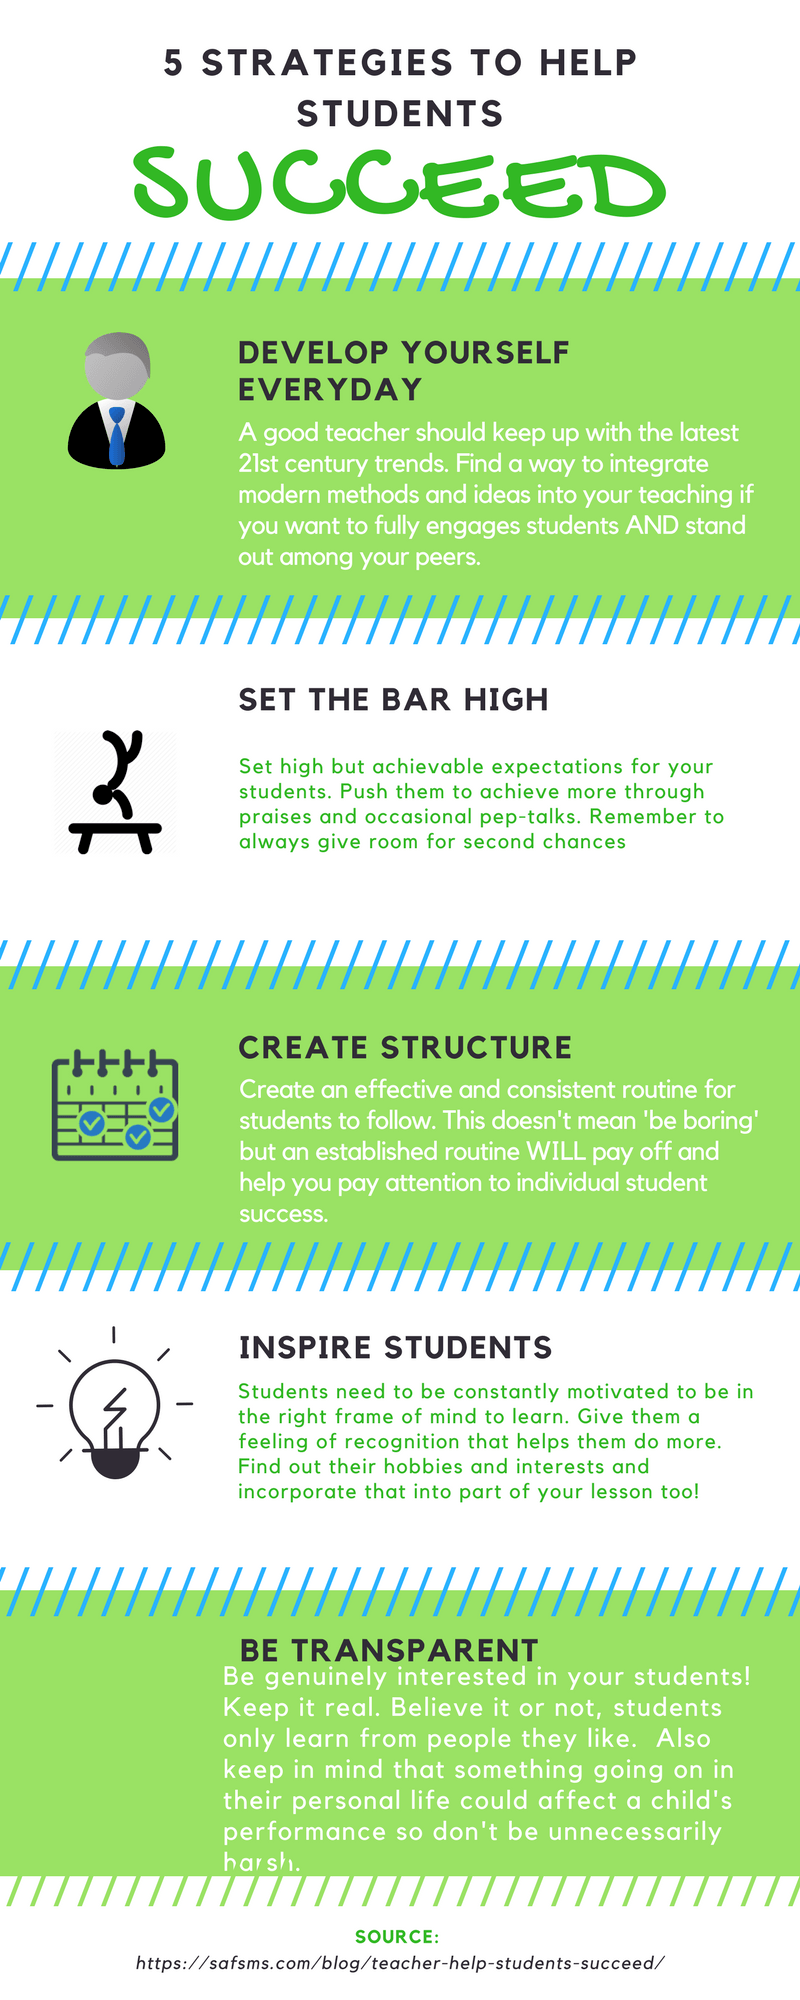 5 Strategies to Help Students Succeed Infographic